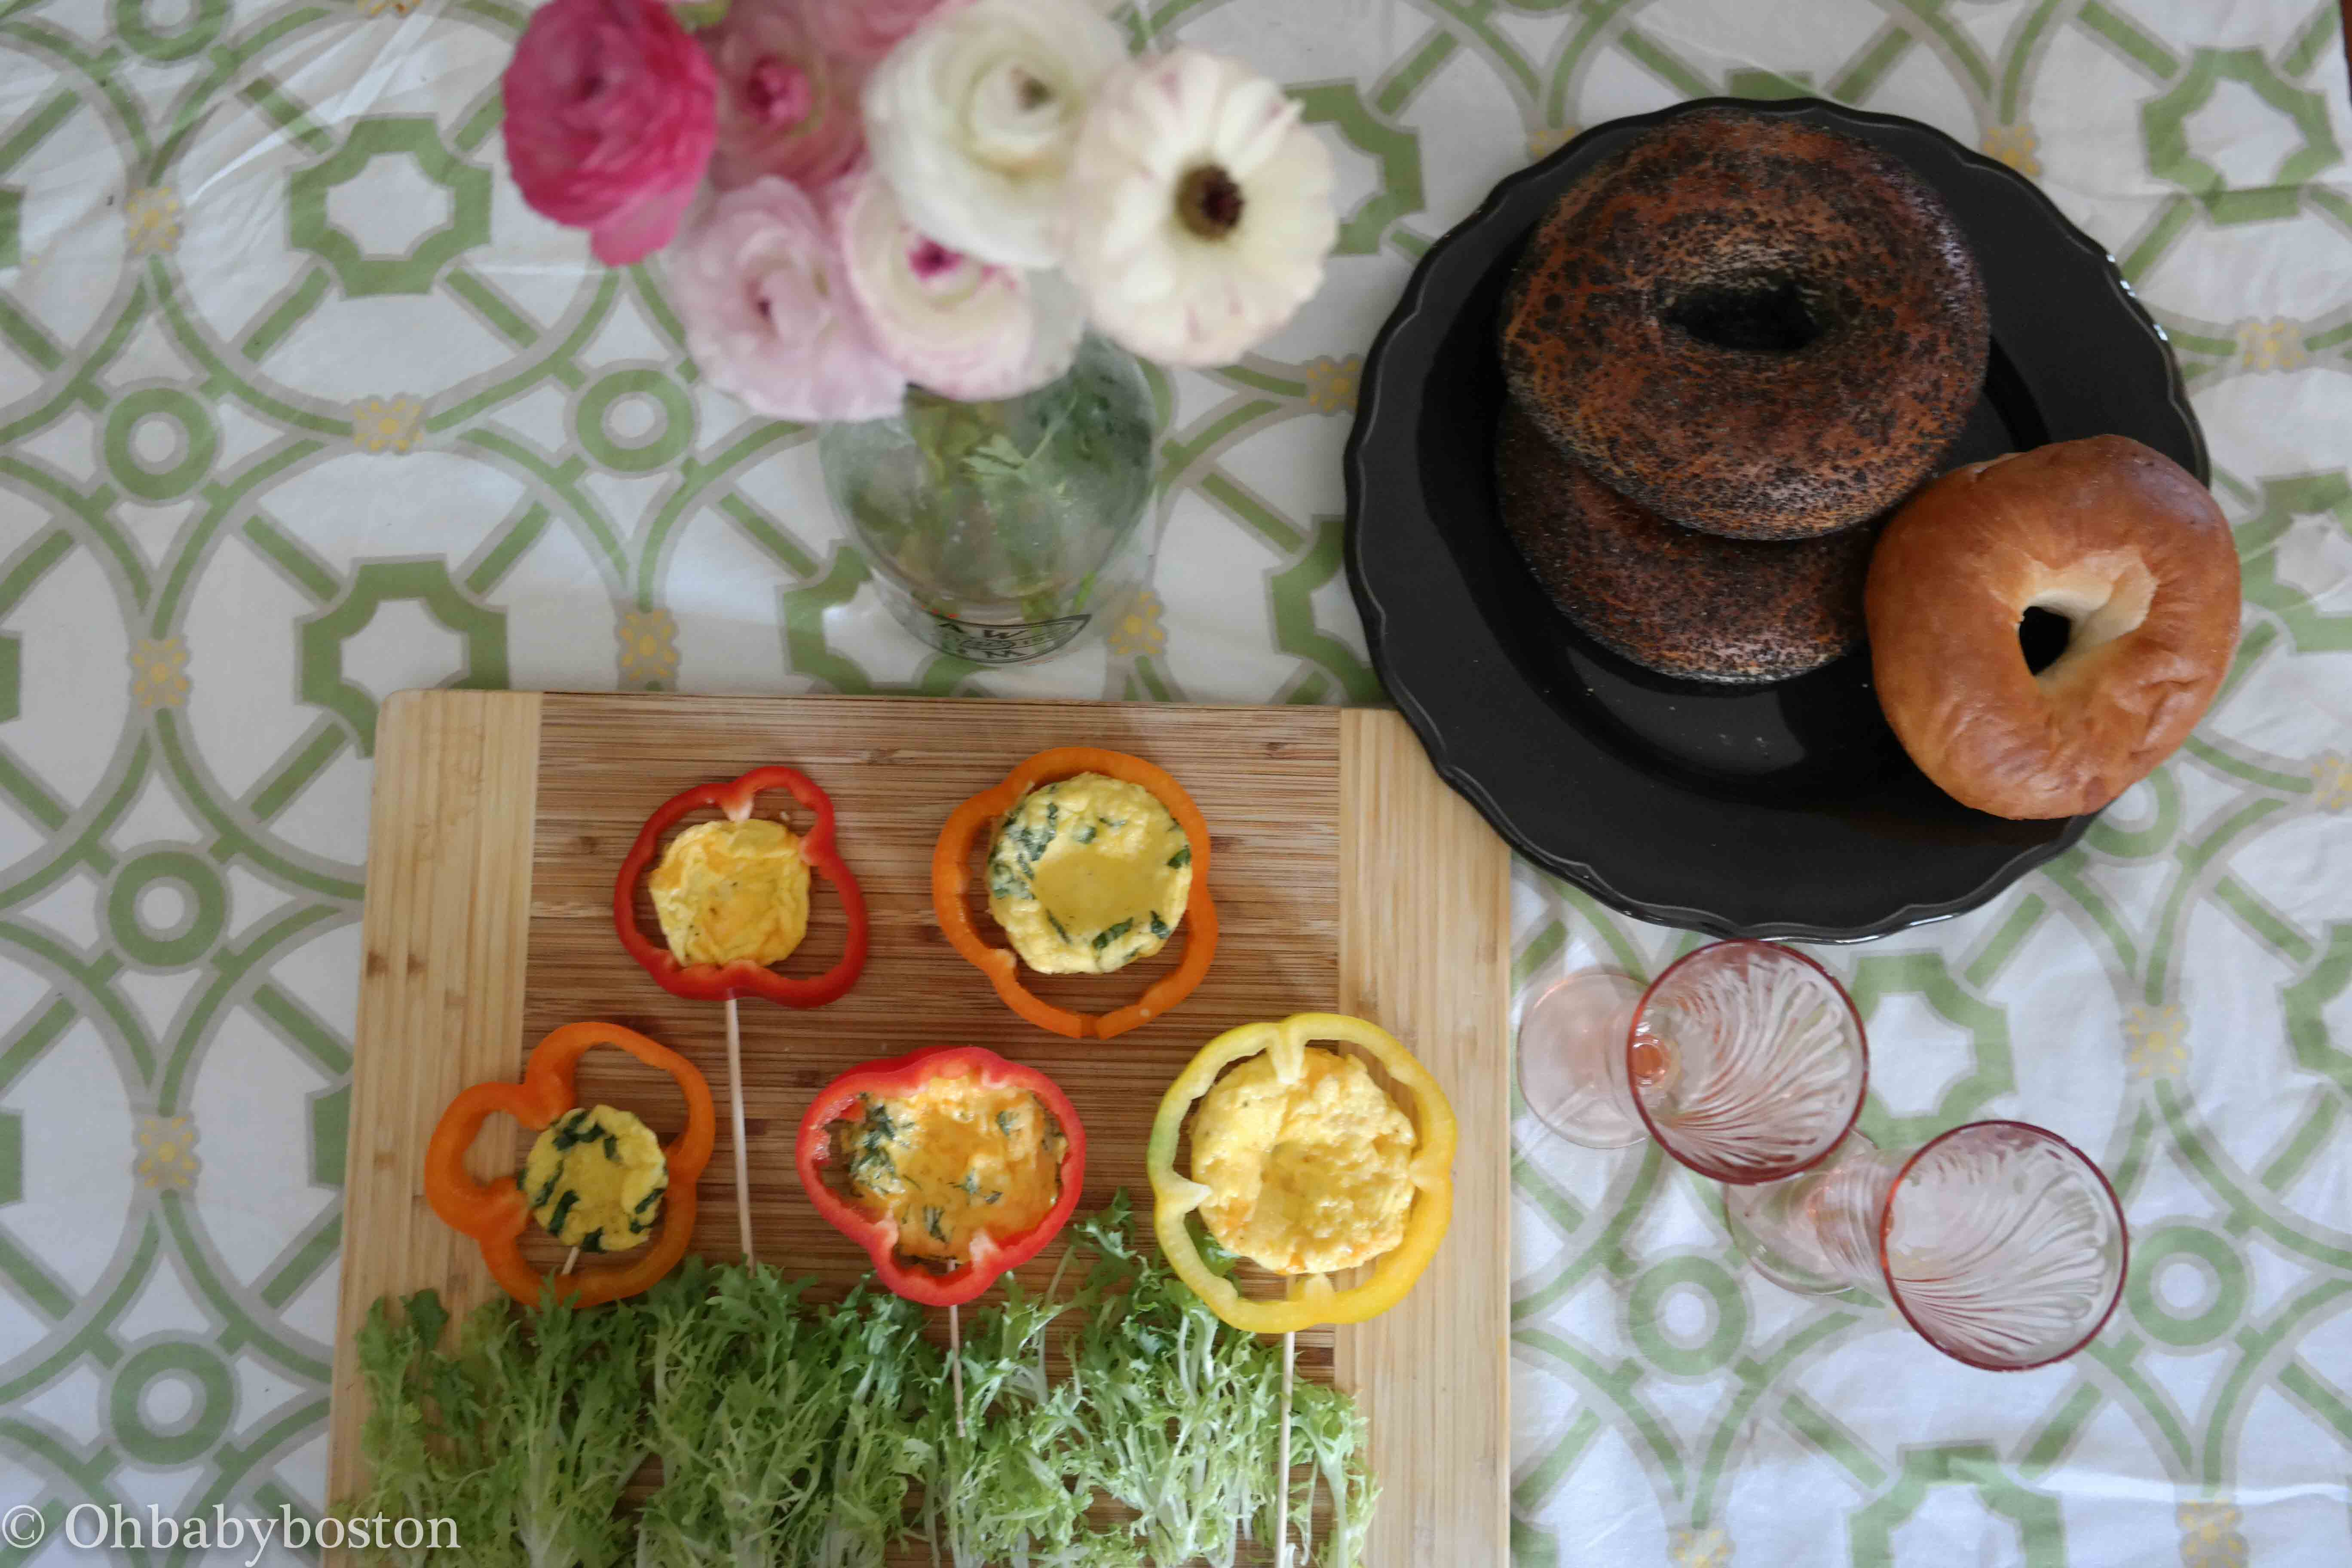 Frittata Flowers on cutting board with plate of bagels